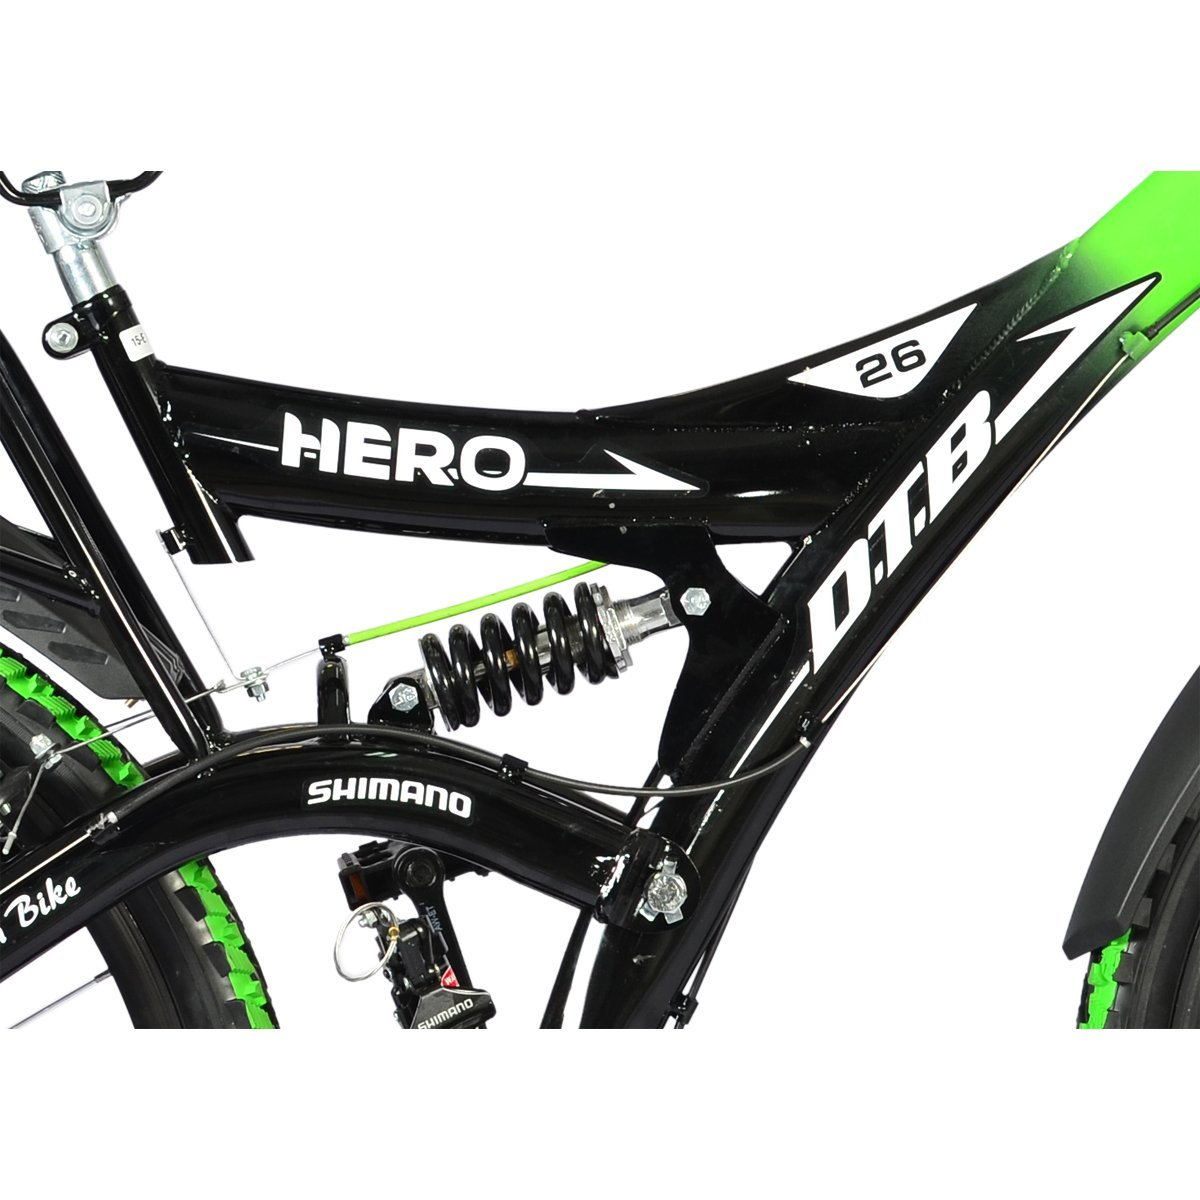 8cdbf571188 Buy Hero Ranger 18 Speed DTB Vx 26T Mountain Bike - Black and Green Online  at Low Prices in India - Amazon.in